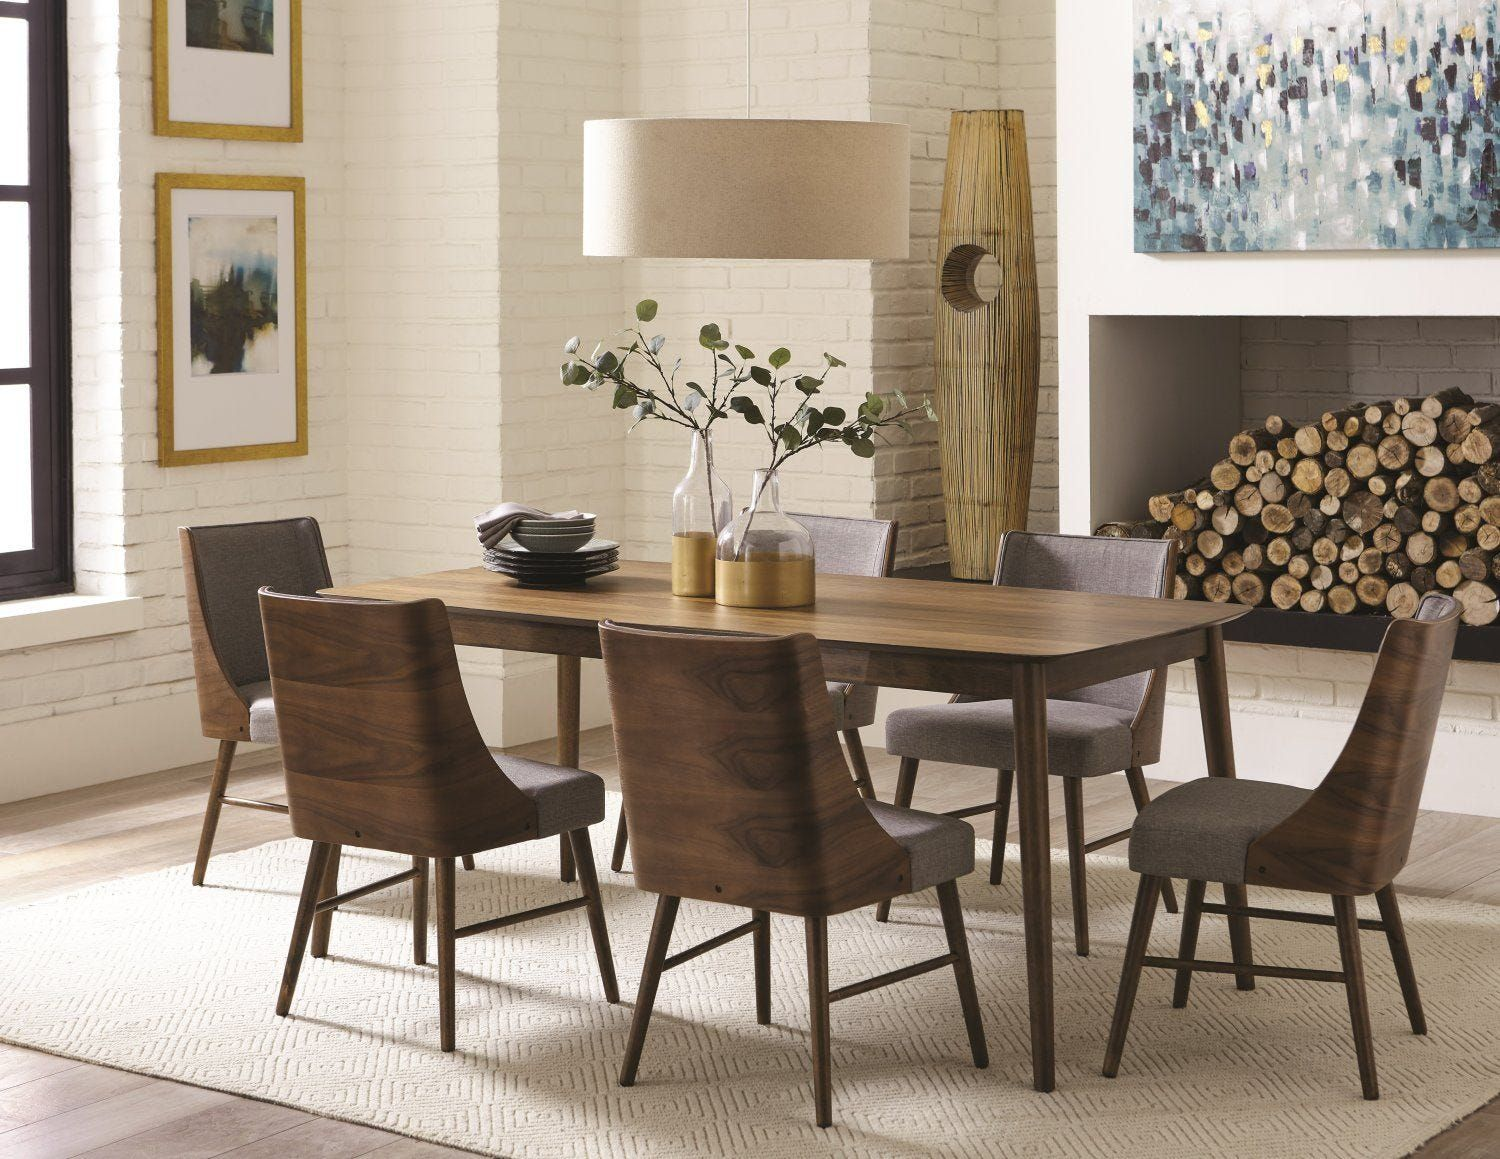 Mobilier Salle A Manger 5 Mcx Surplus Rd Dining Table Chairs Dining Table Dining Table Setting